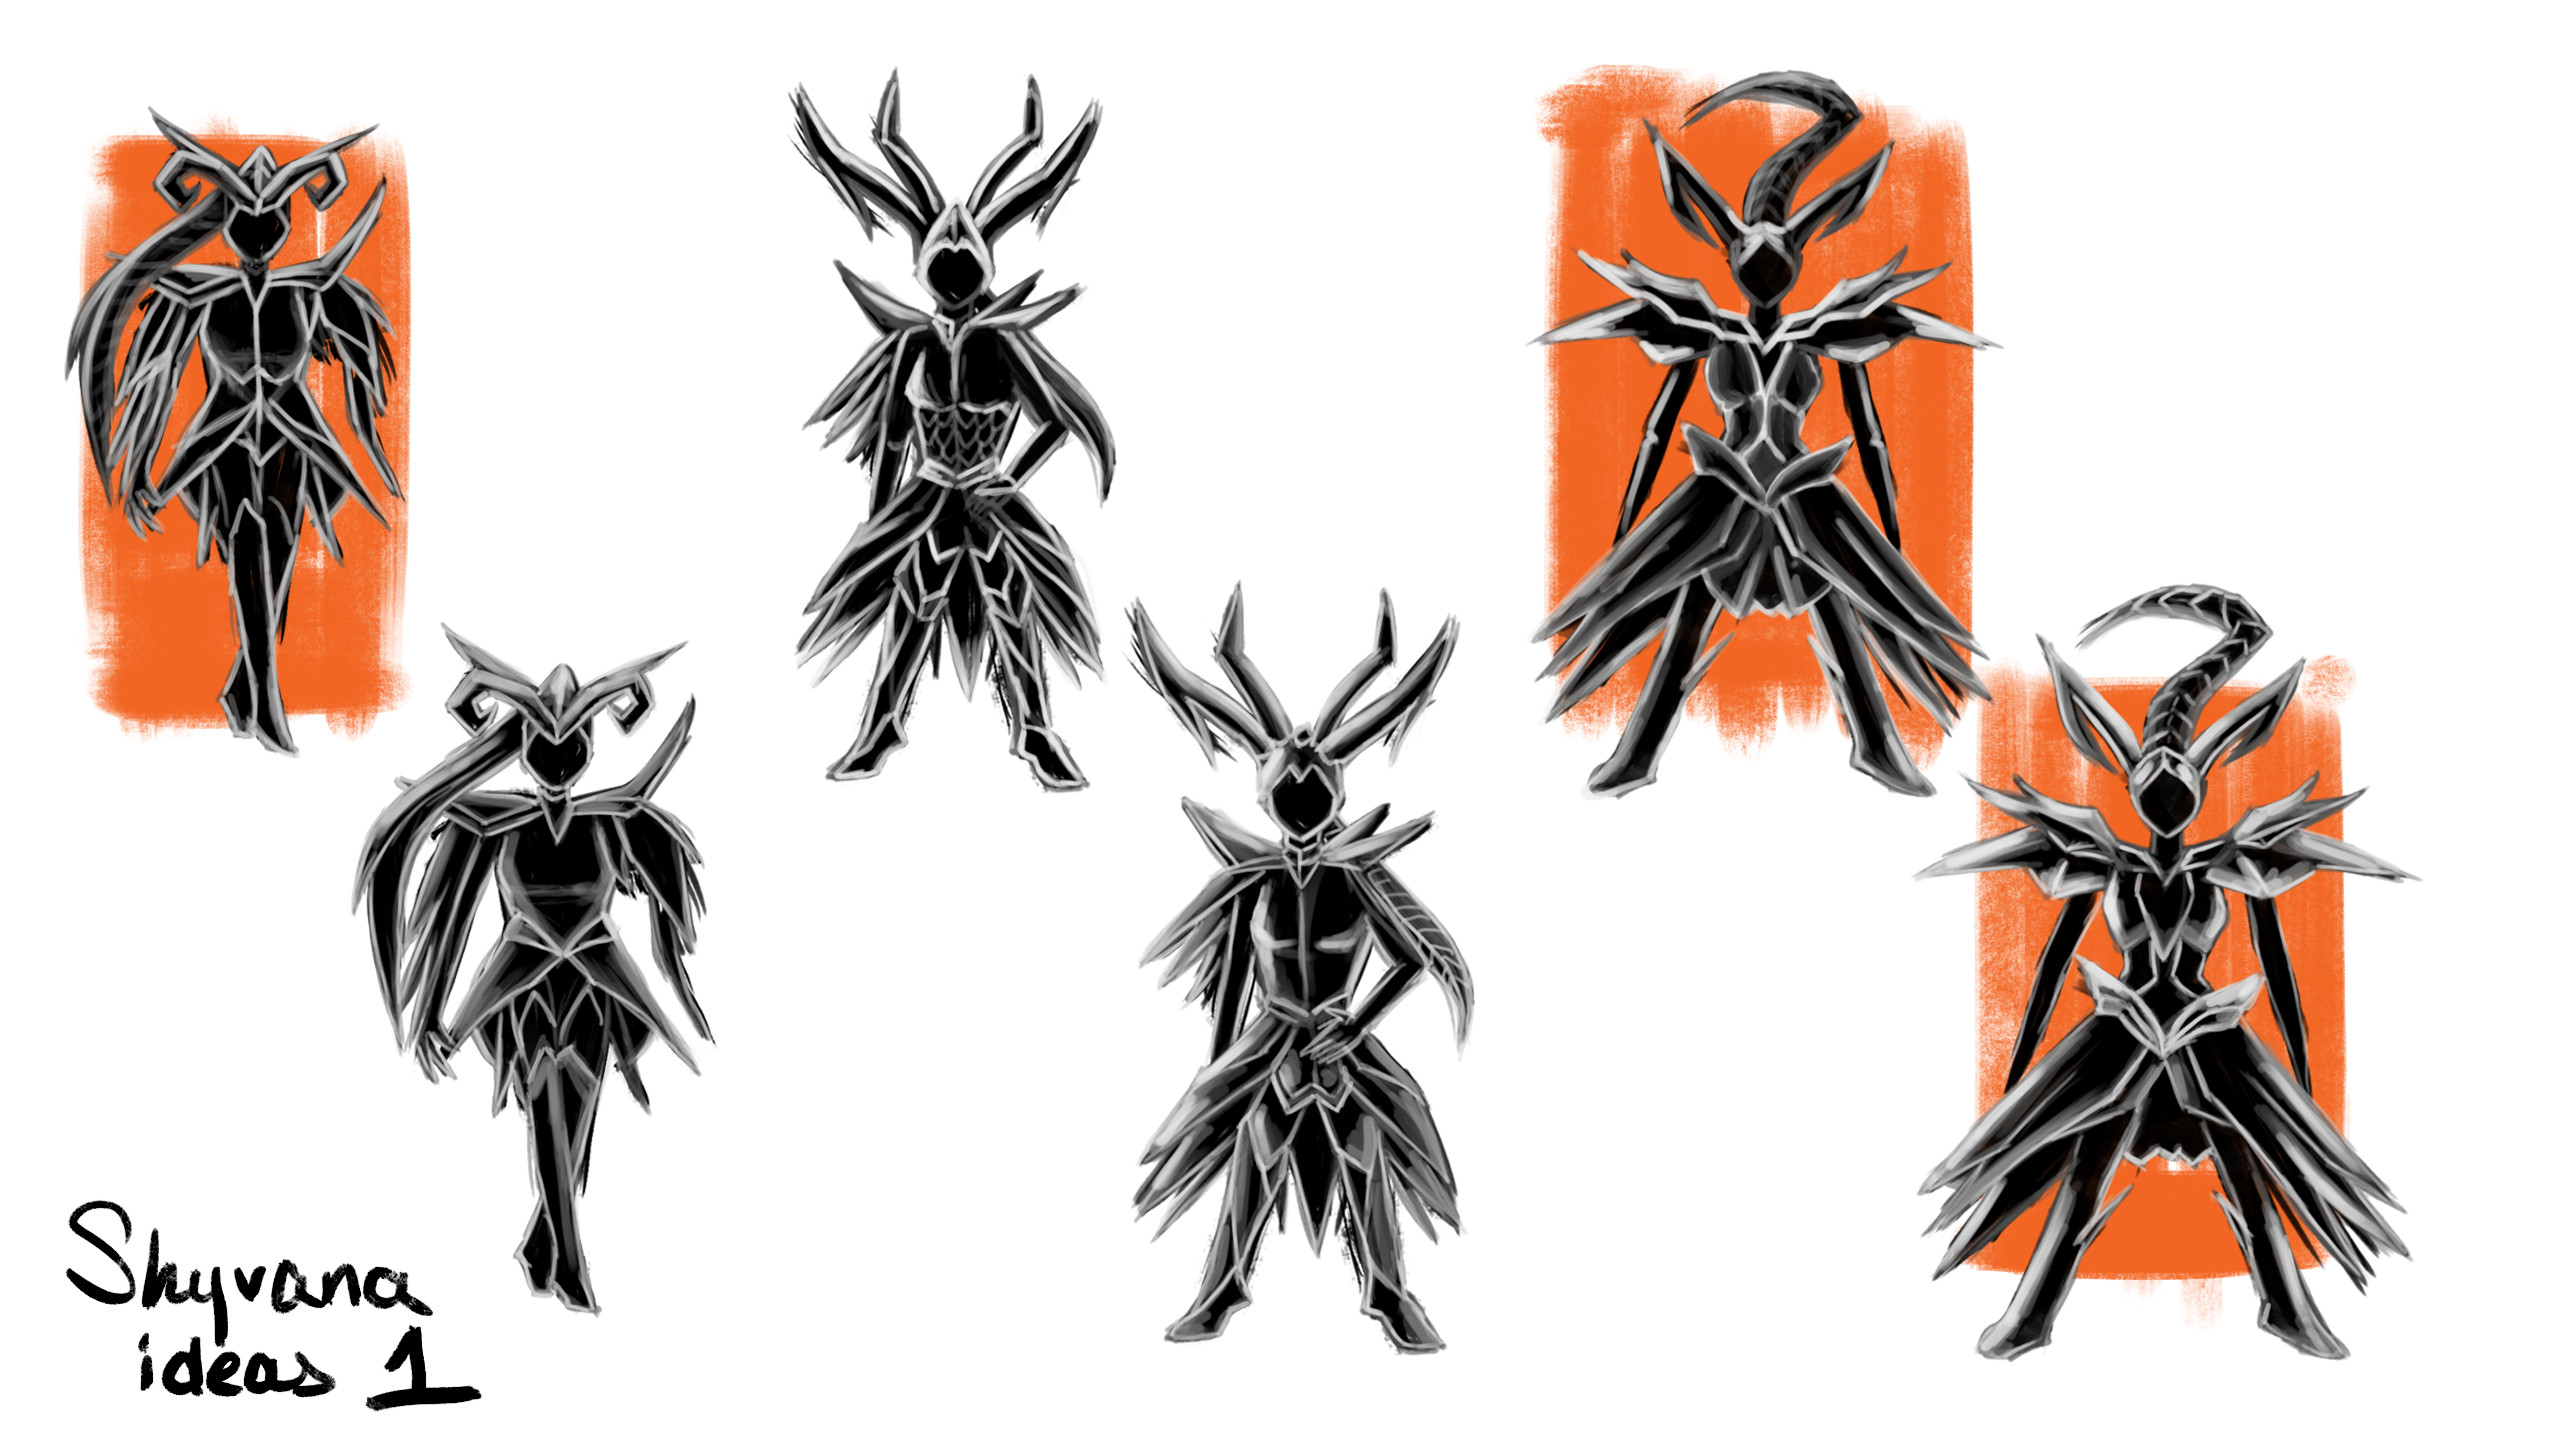 my initial silhouette ideas using alchemy doodling as a base